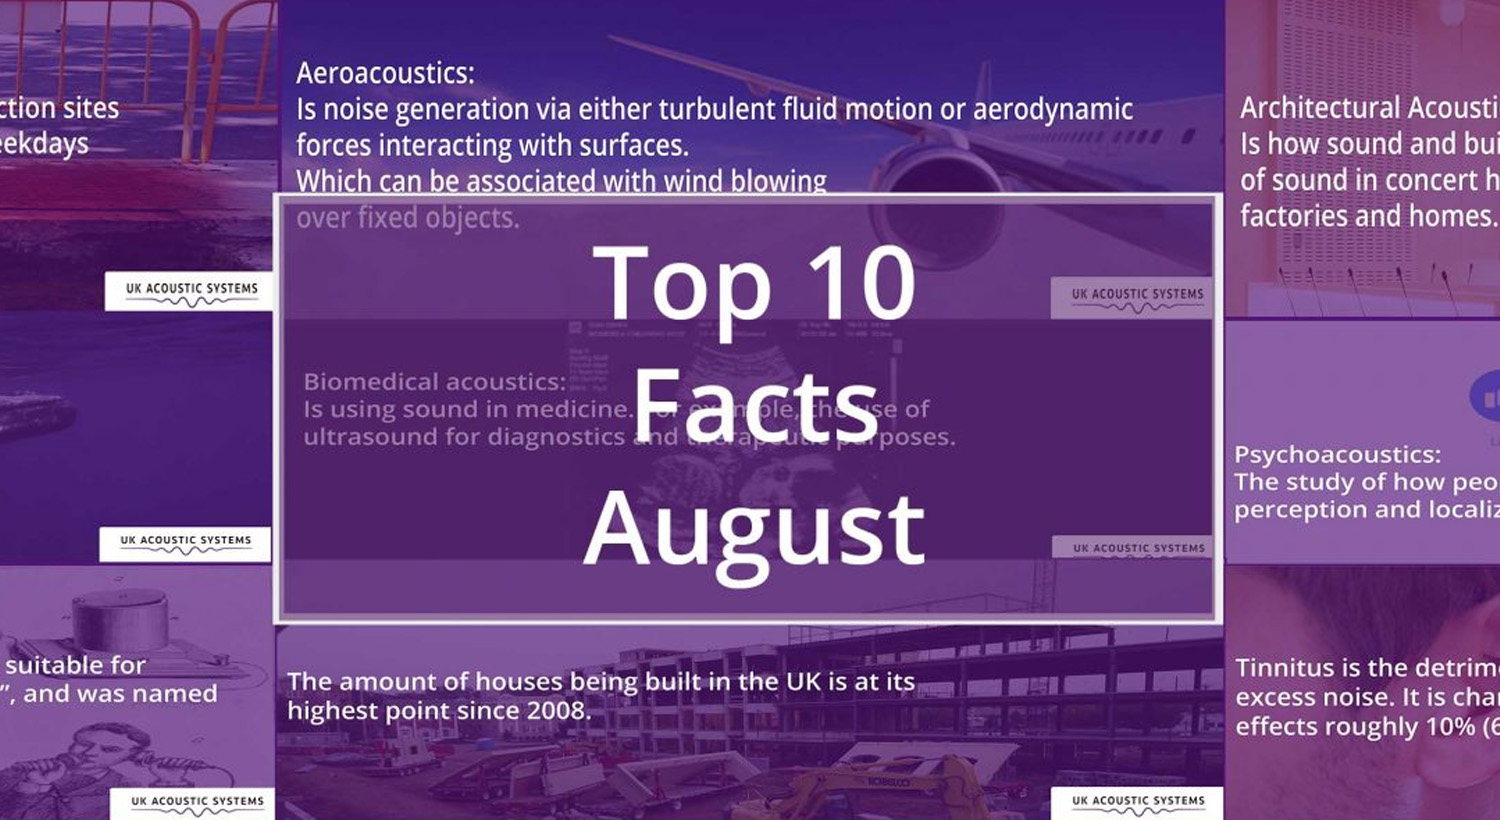 Top 10 Facts August